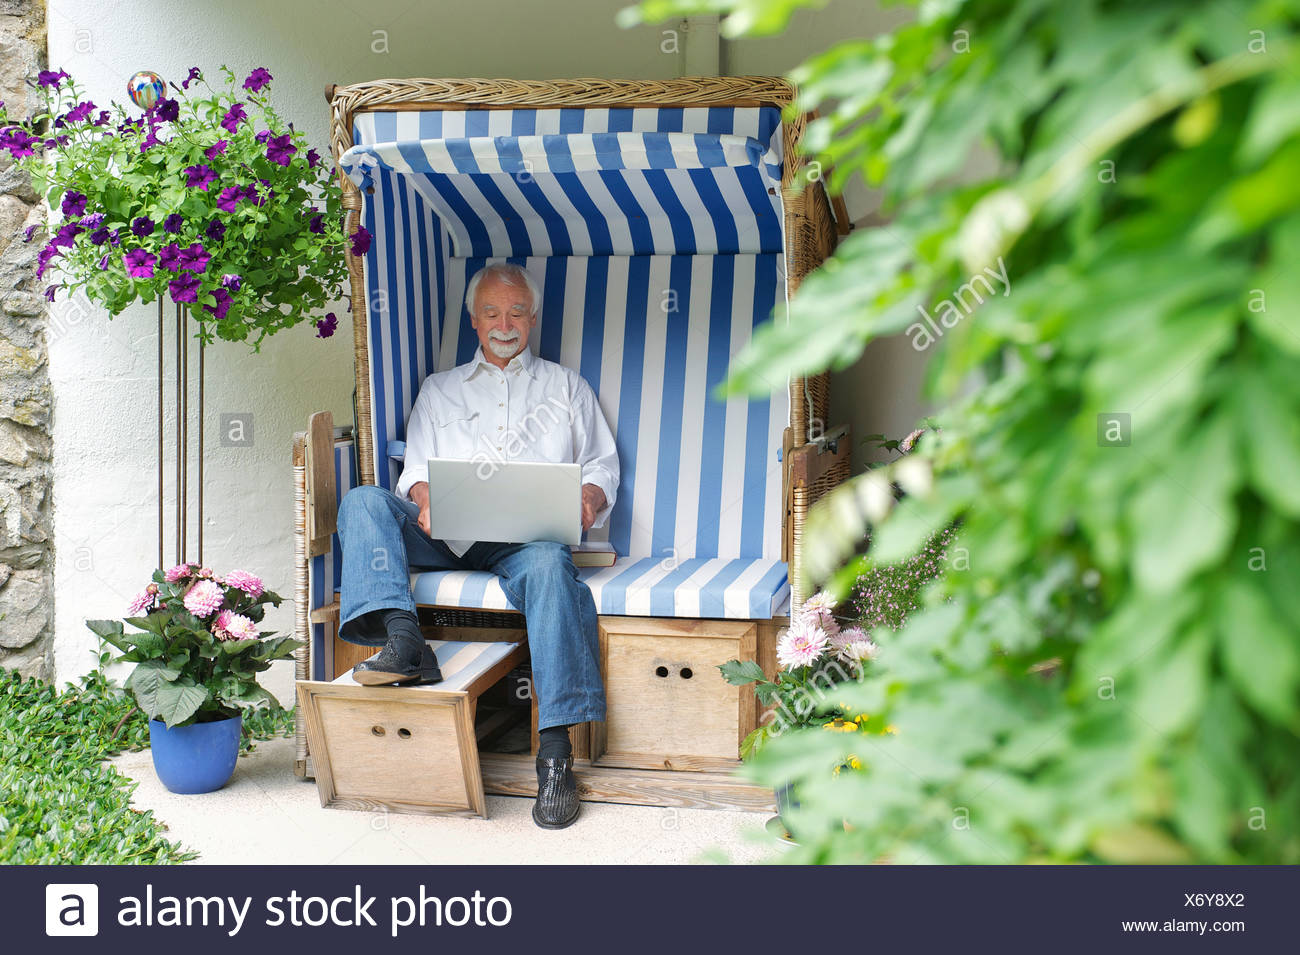 Senior man using laptop on garden seat - Stock Image